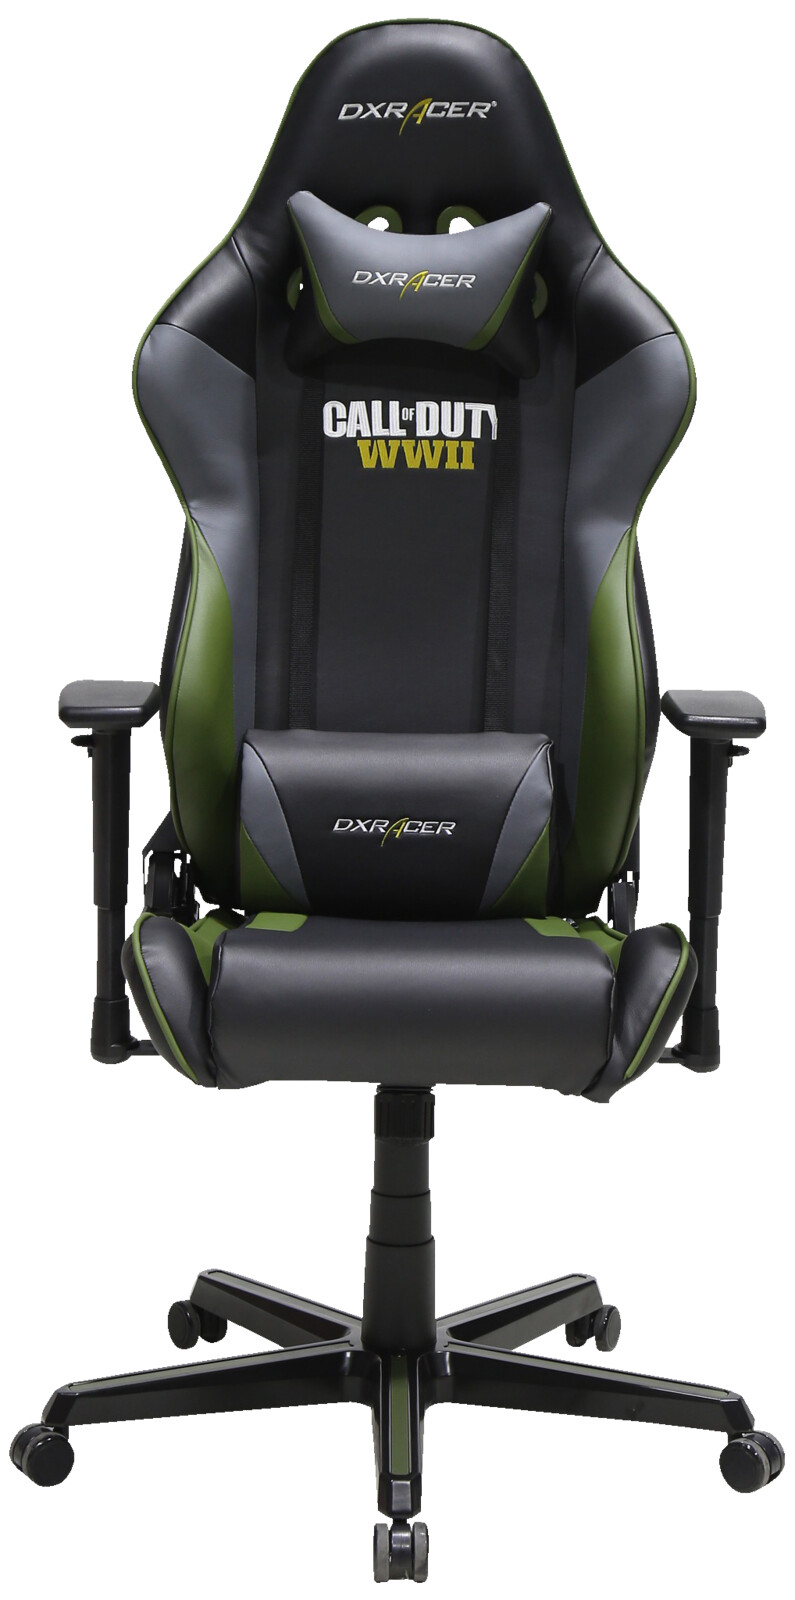 dxracer racing r52 gaming chair call of duty wwii edition gaming stuhl schwarz ebay. Black Bedroom Furniture Sets. Home Design Ideas